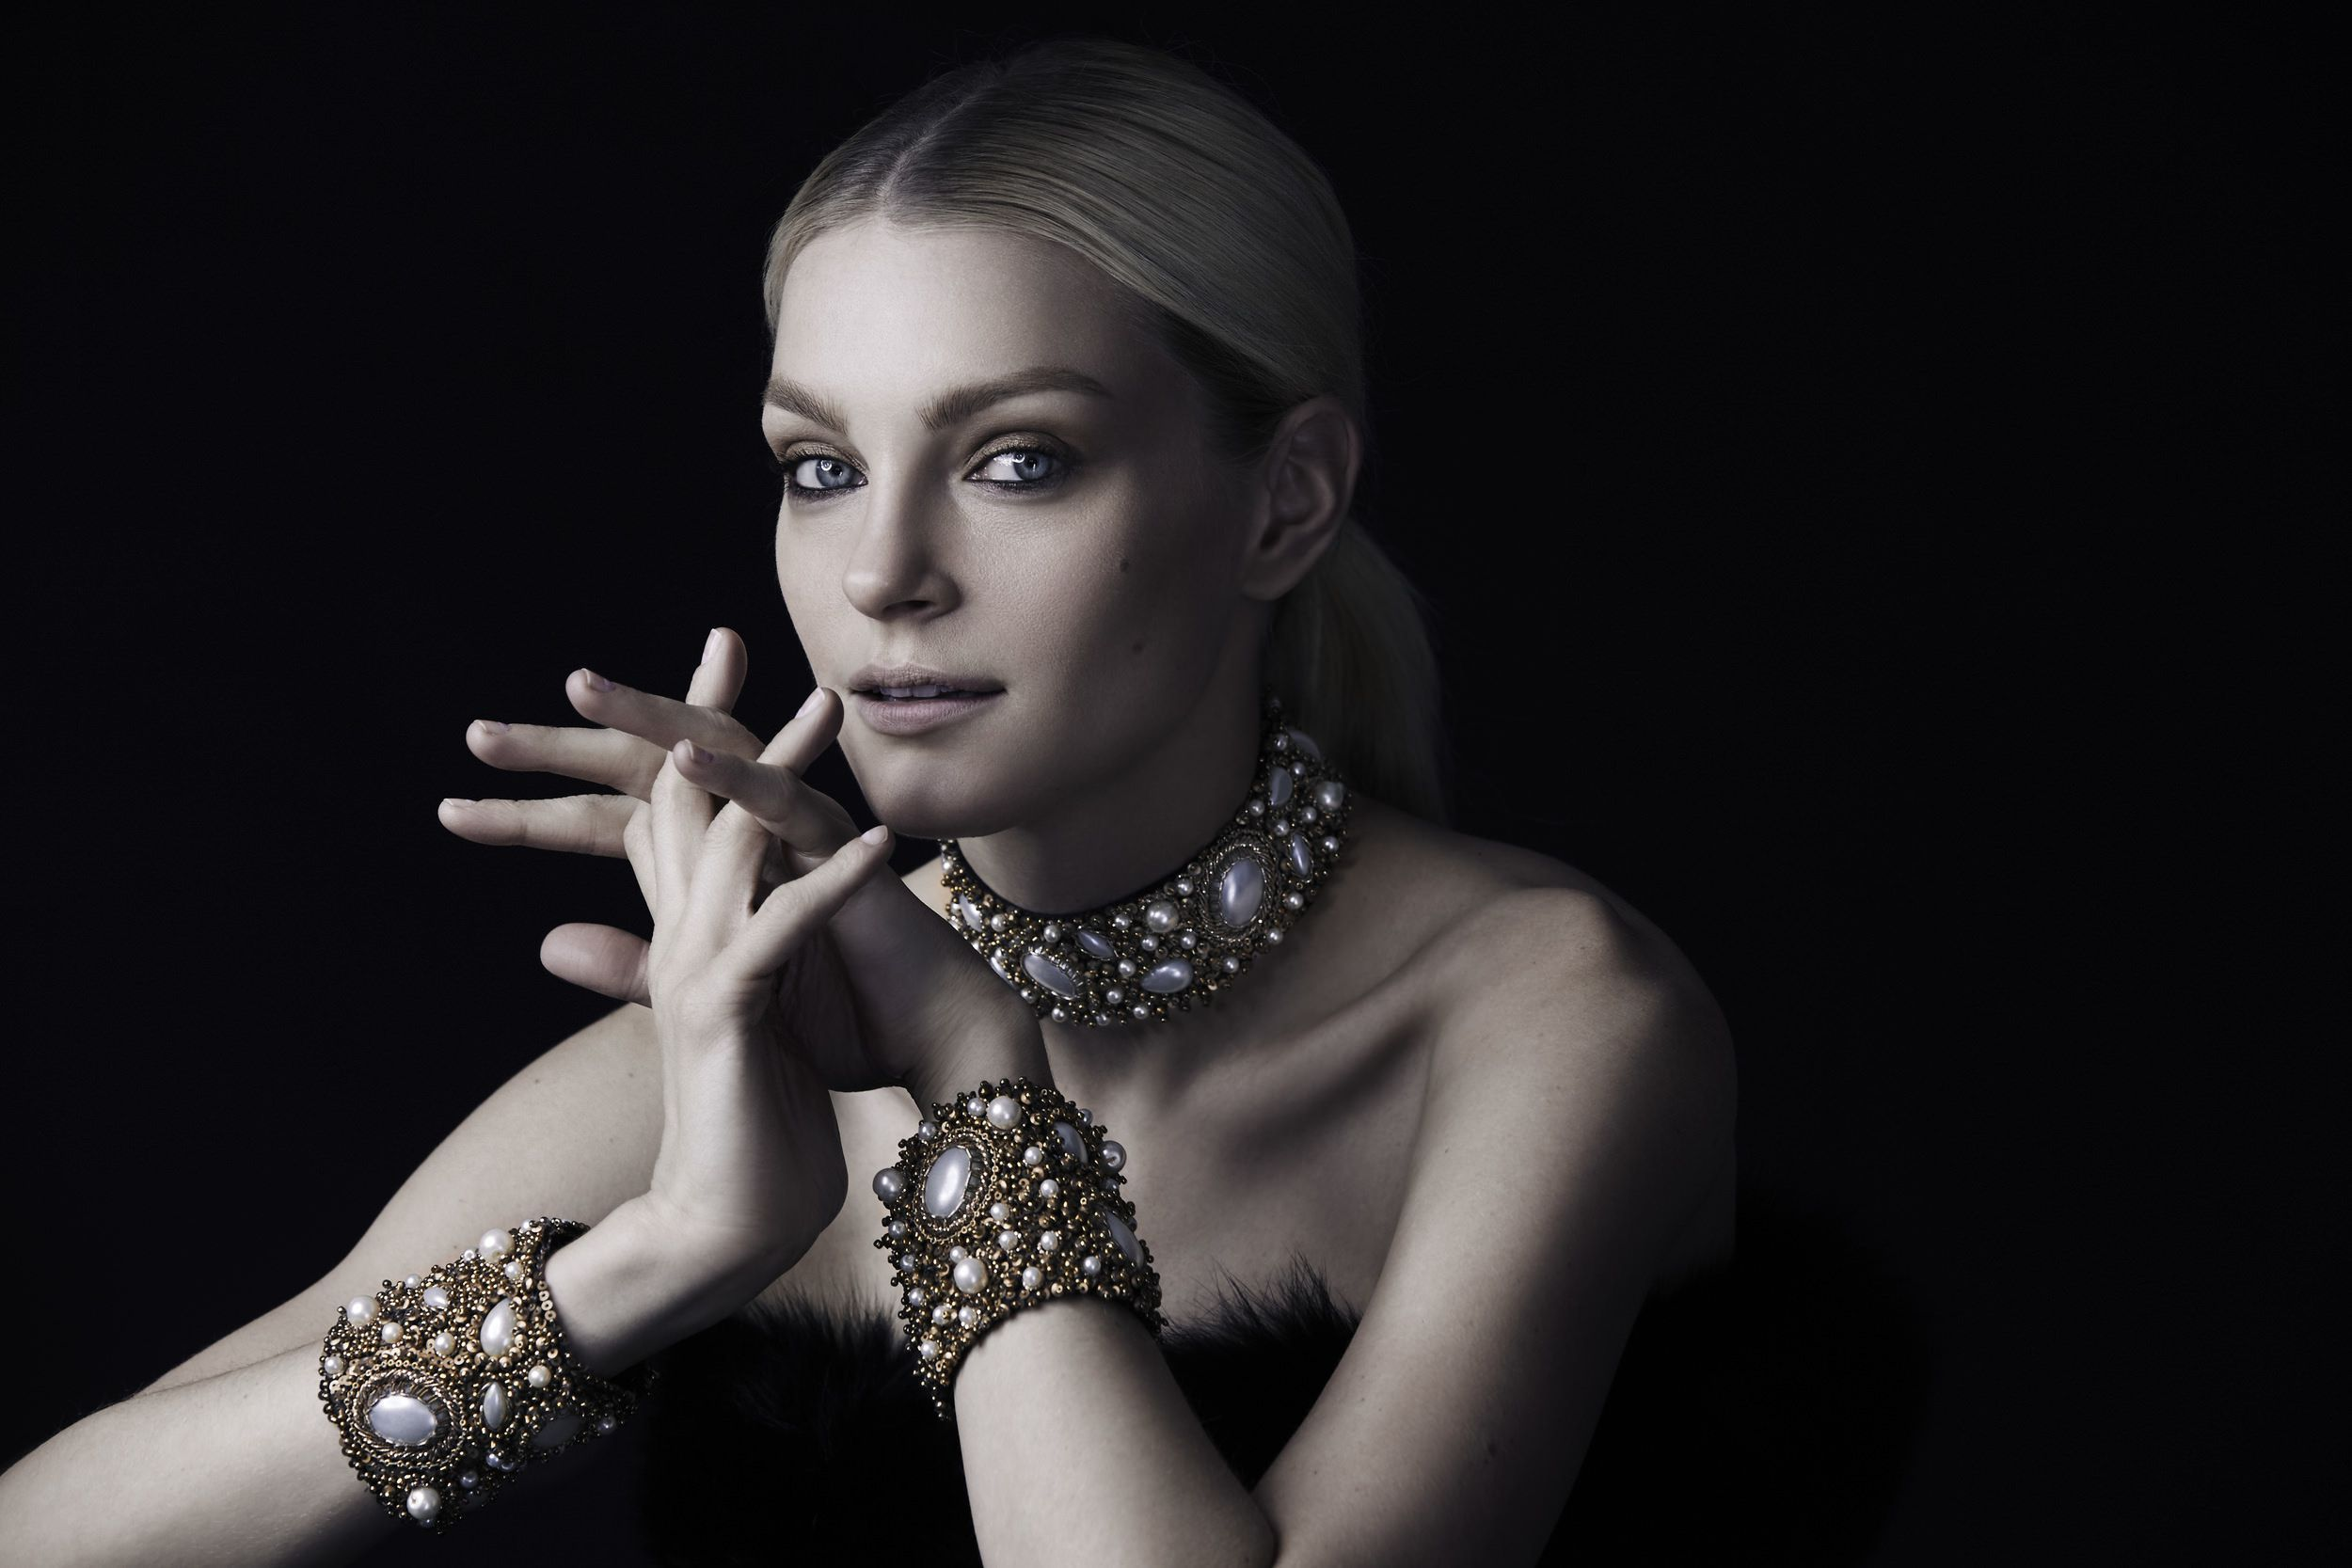 jessica stam wallpaper background 60108